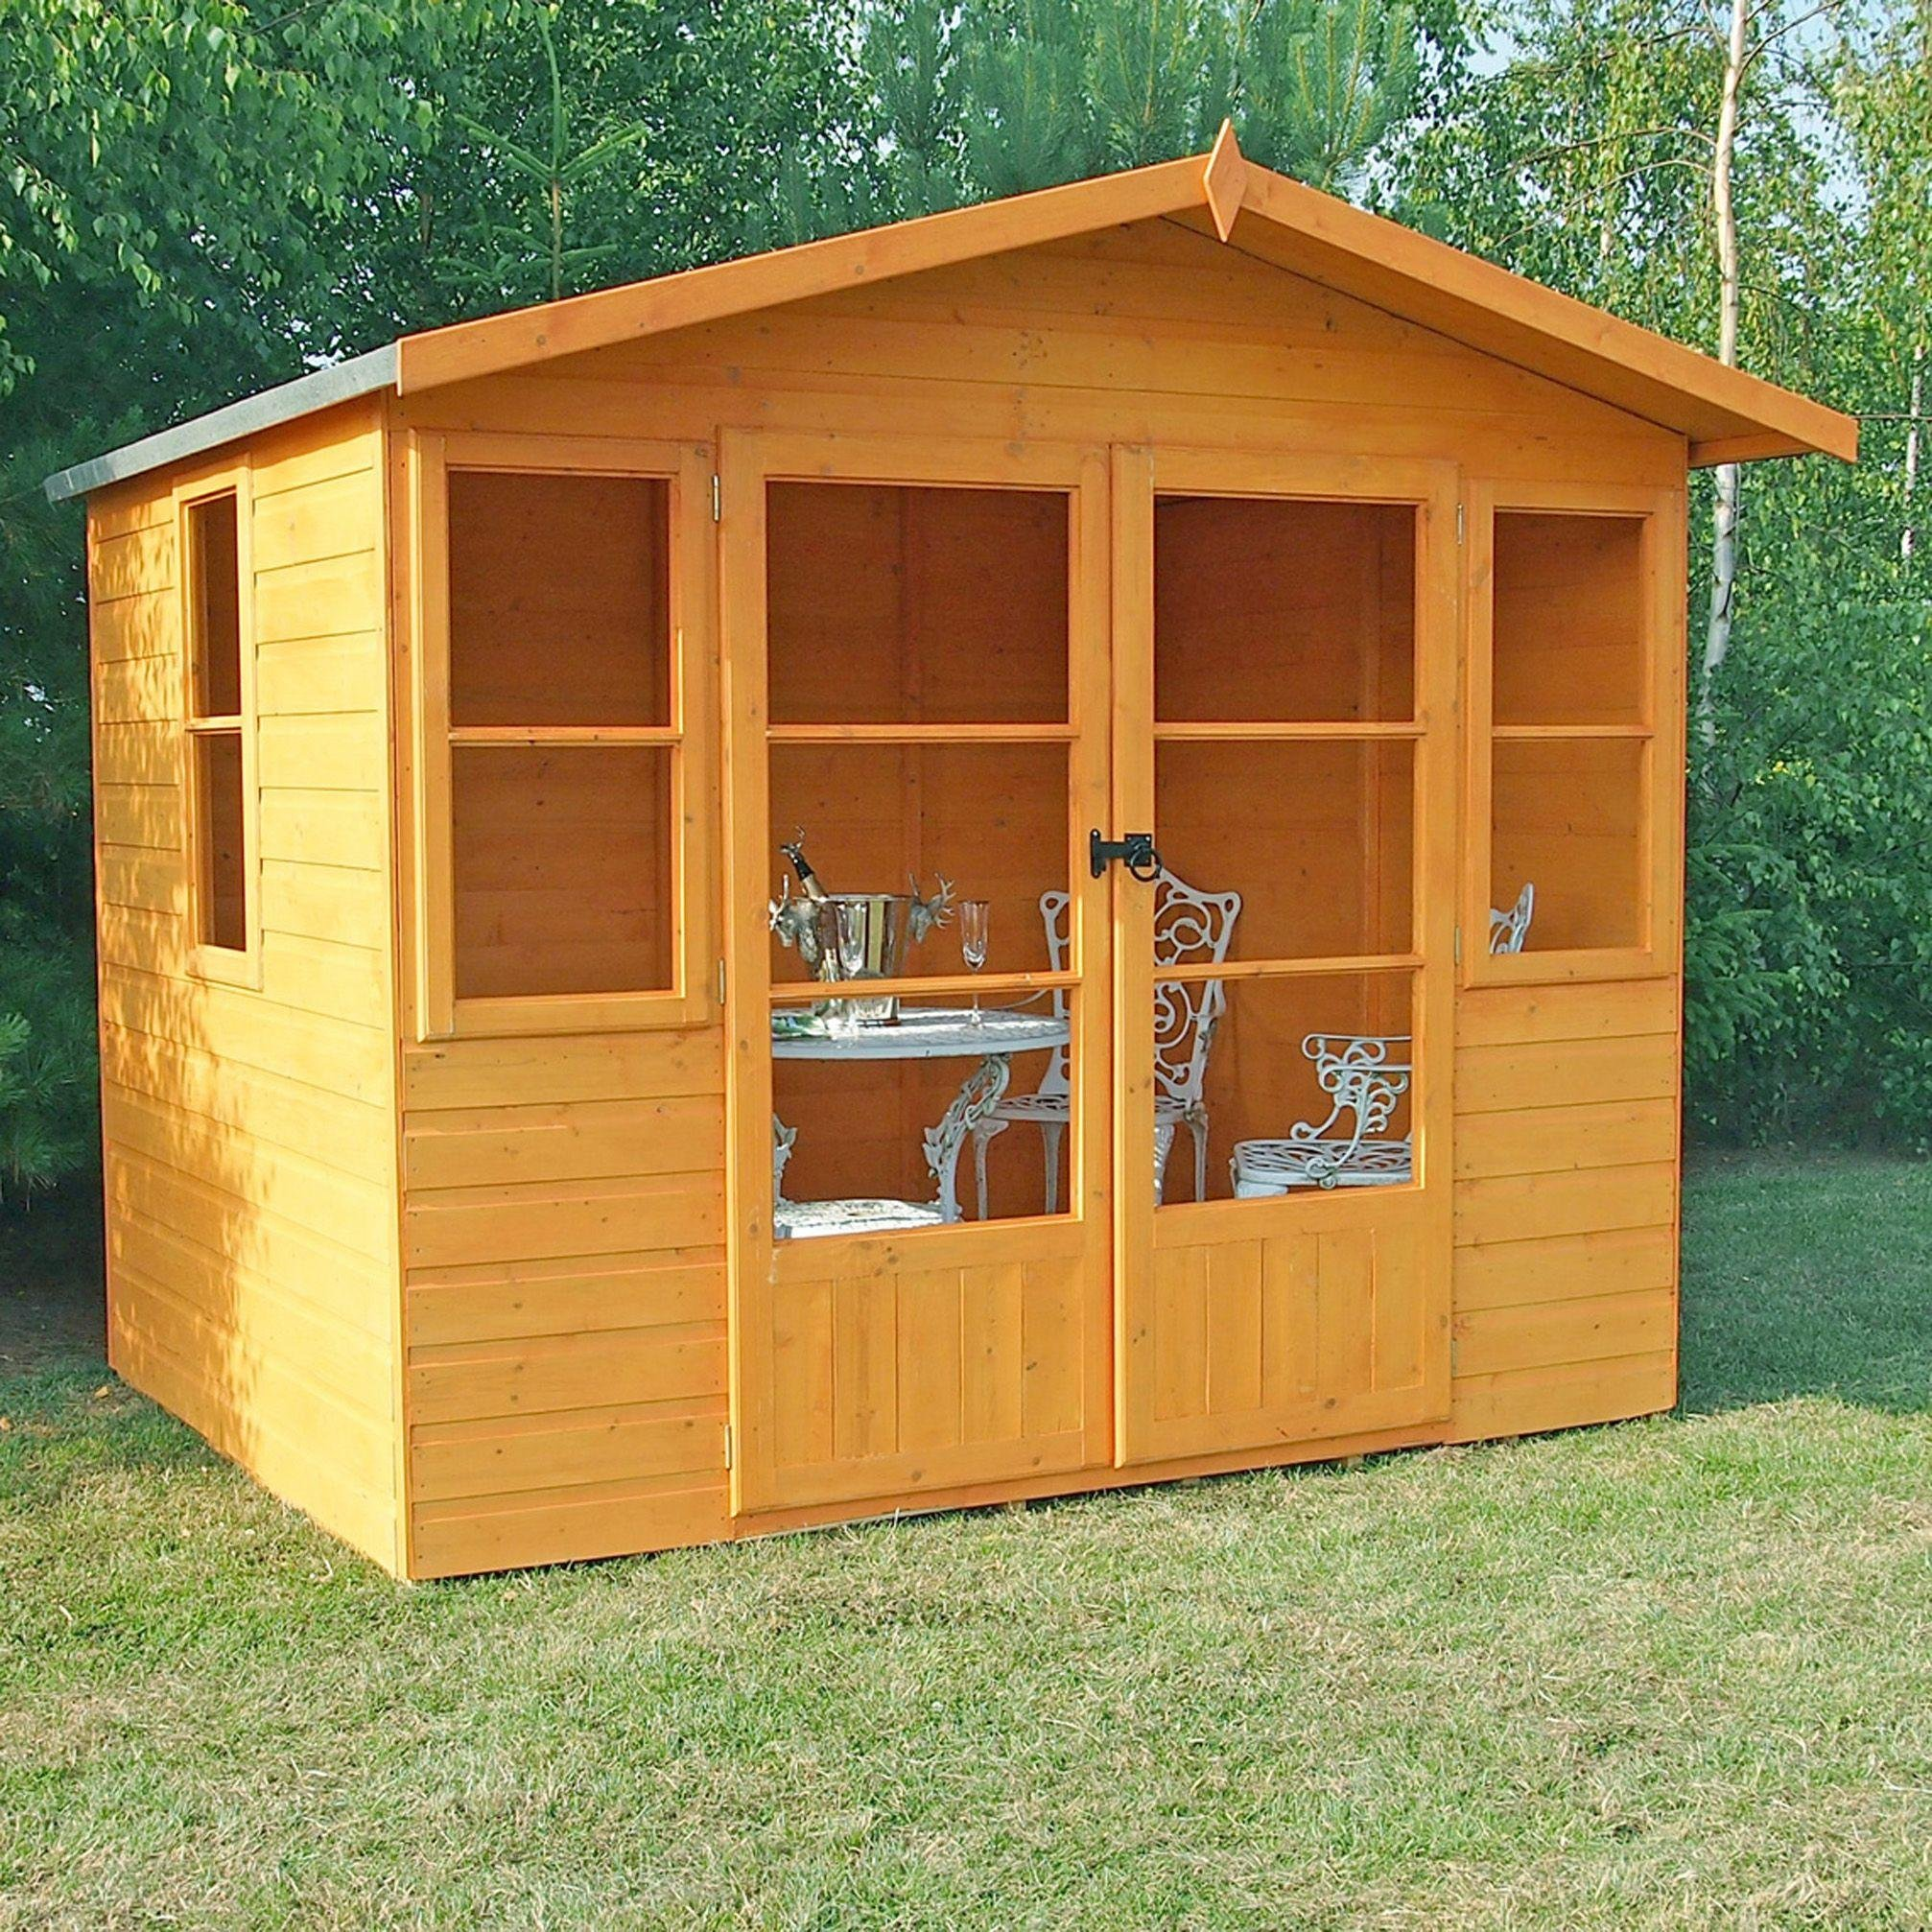 Homewood Homewood Milton Wooden Summerhouse - 8 x 8ft.